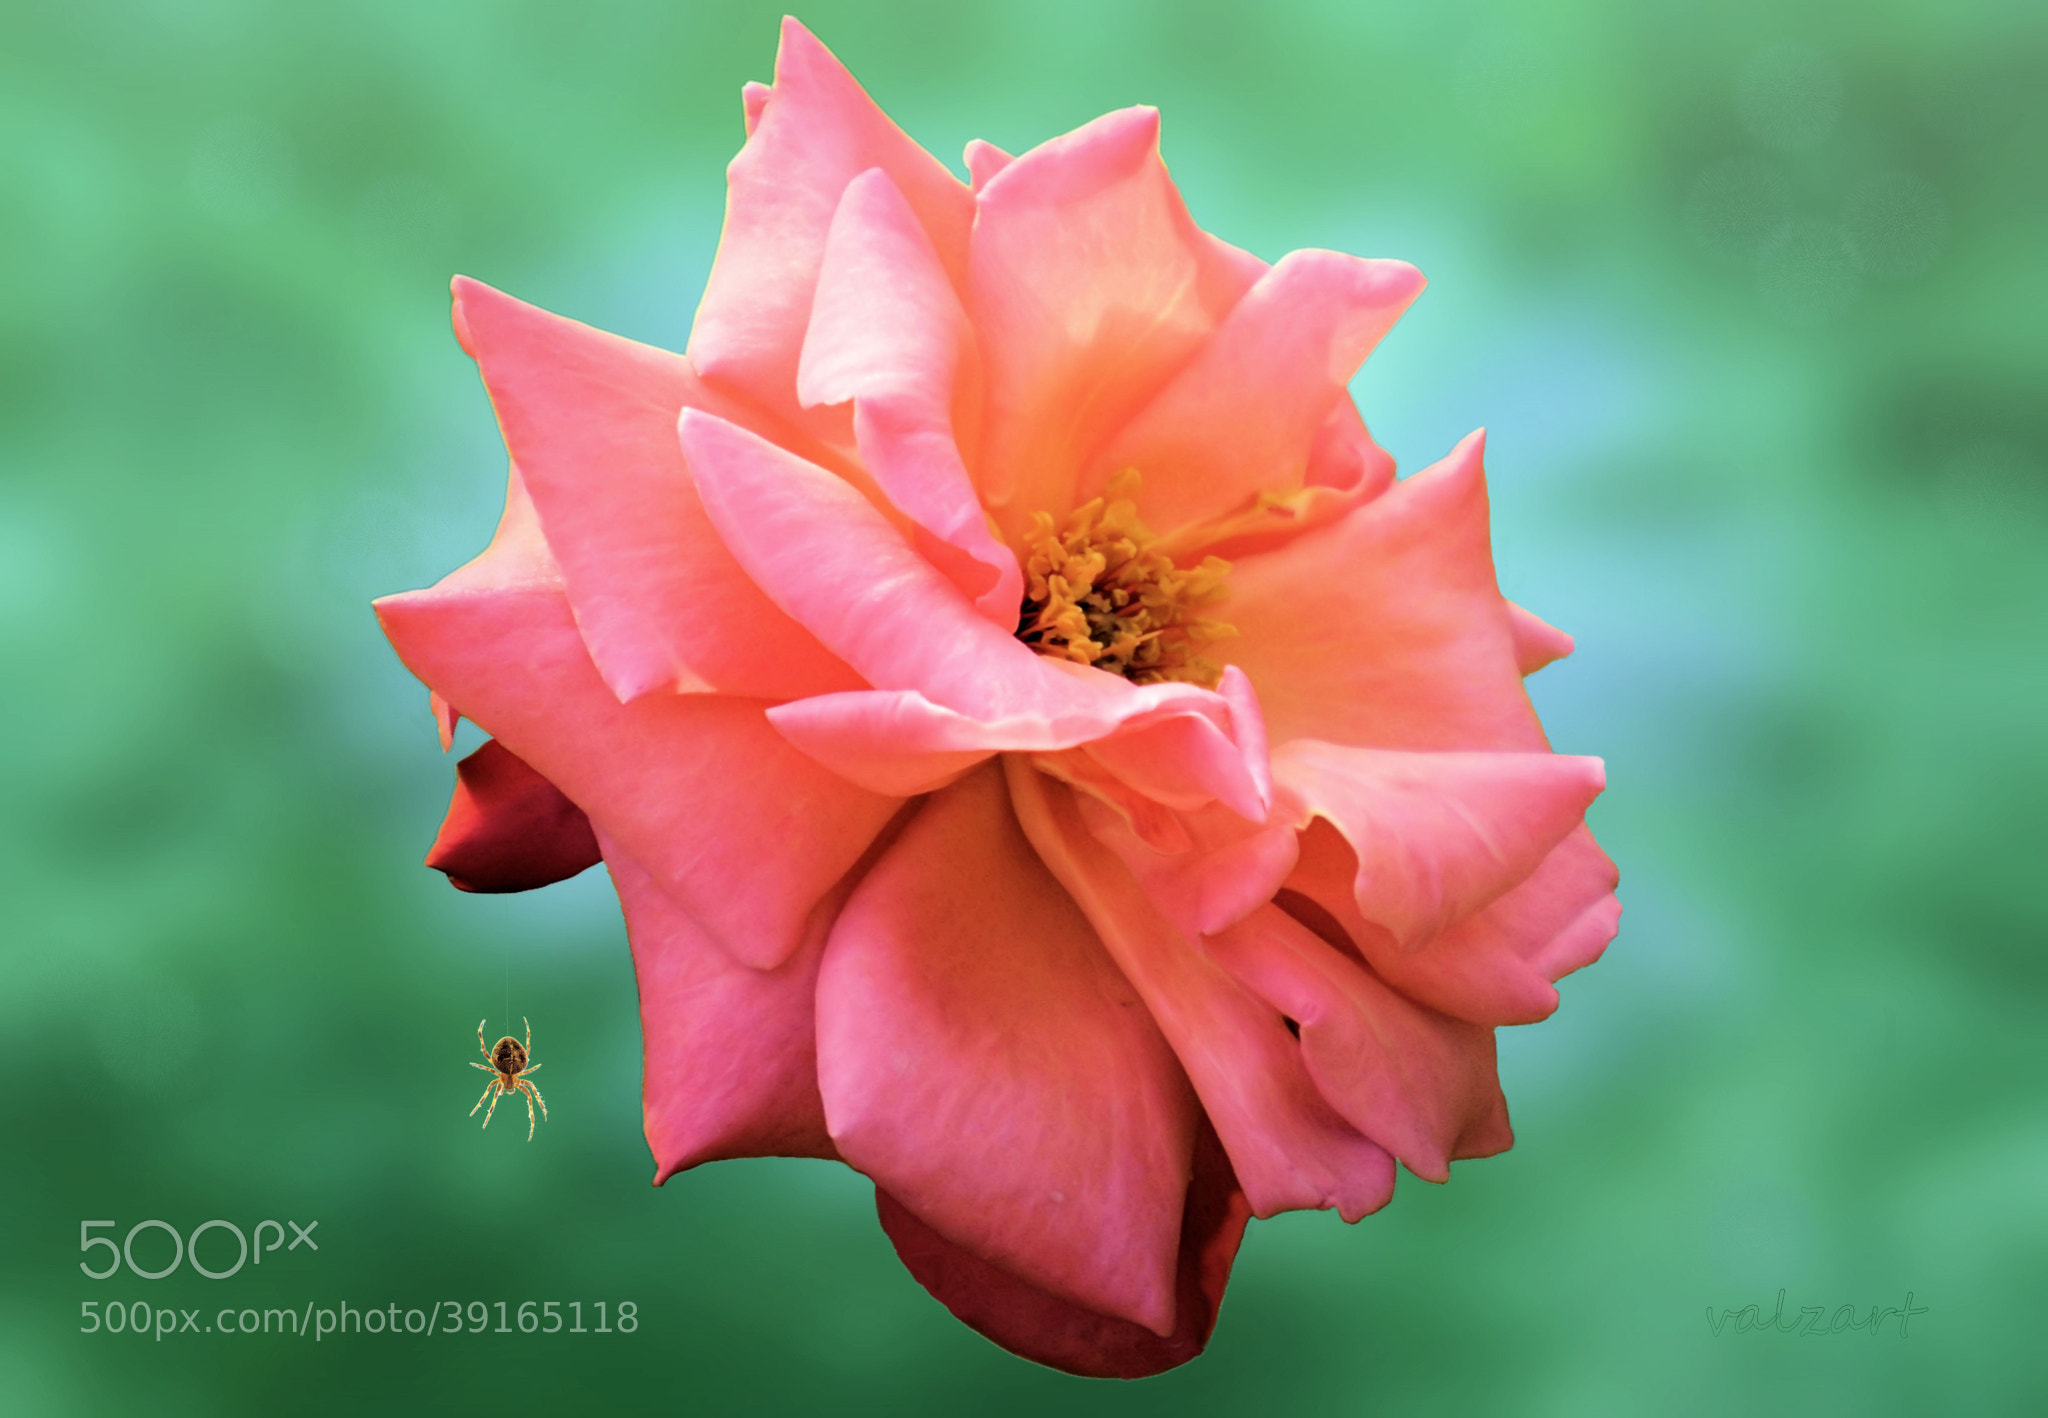 Photograph The spider and the rose by Valerie Anne Kelly on 500px